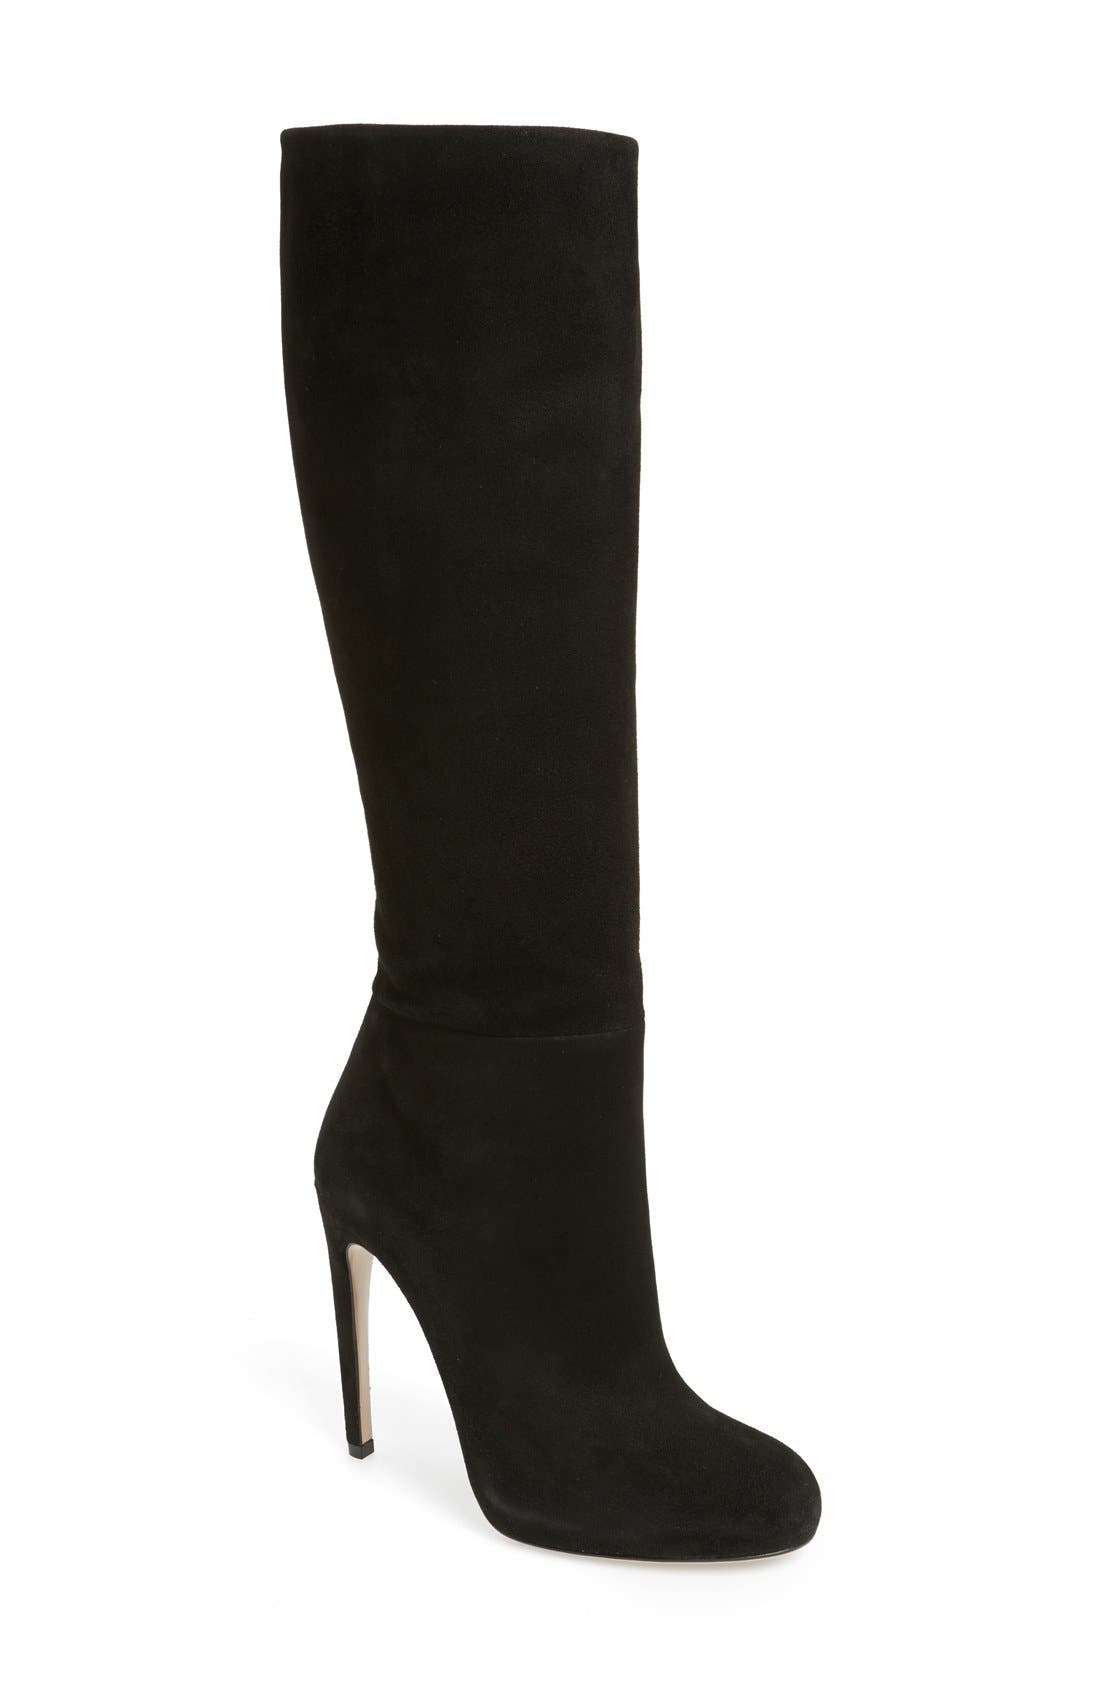 Main Image - Gucci 'Goldie' Boot